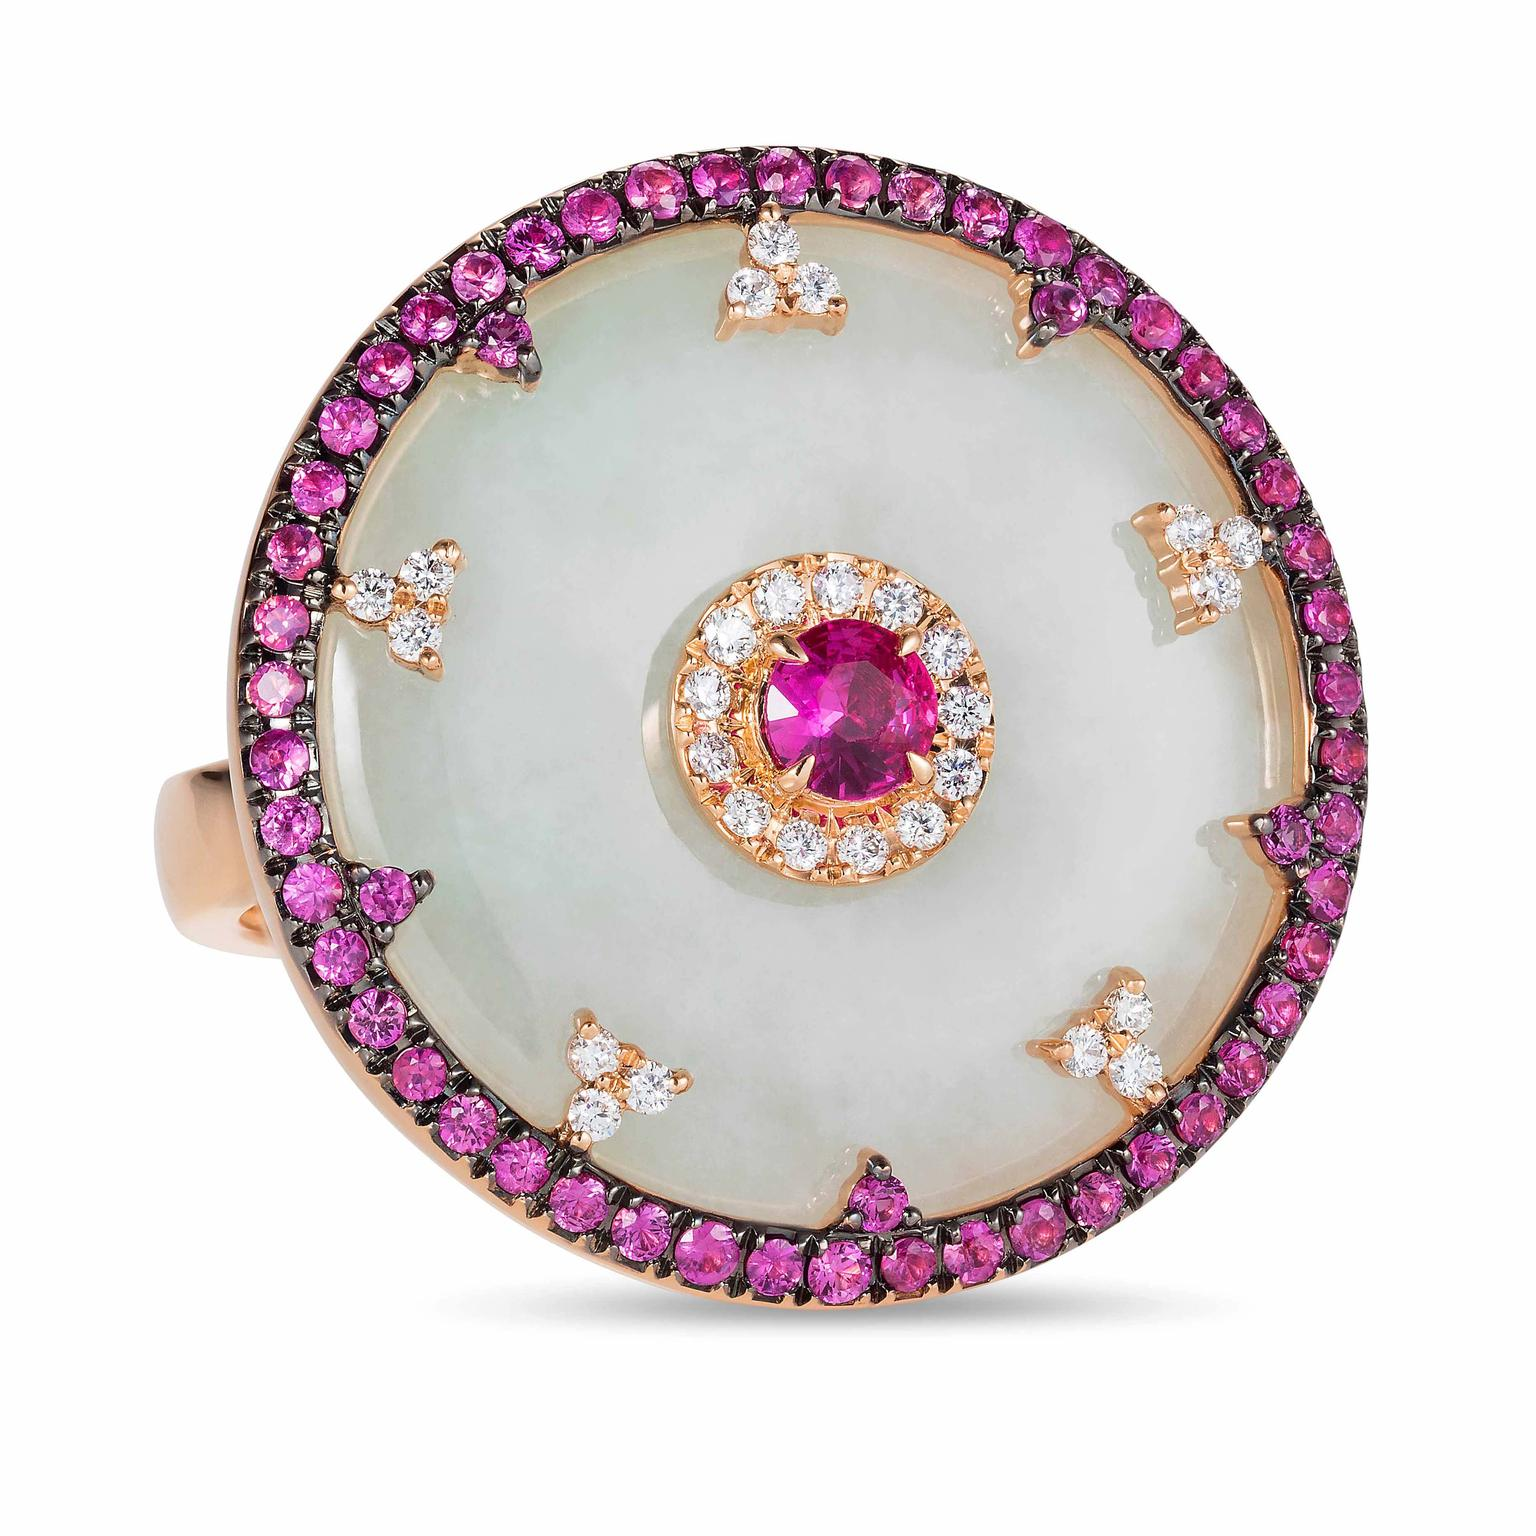 Celeste ring in jade and pink sapphires from Nadine Aysoy